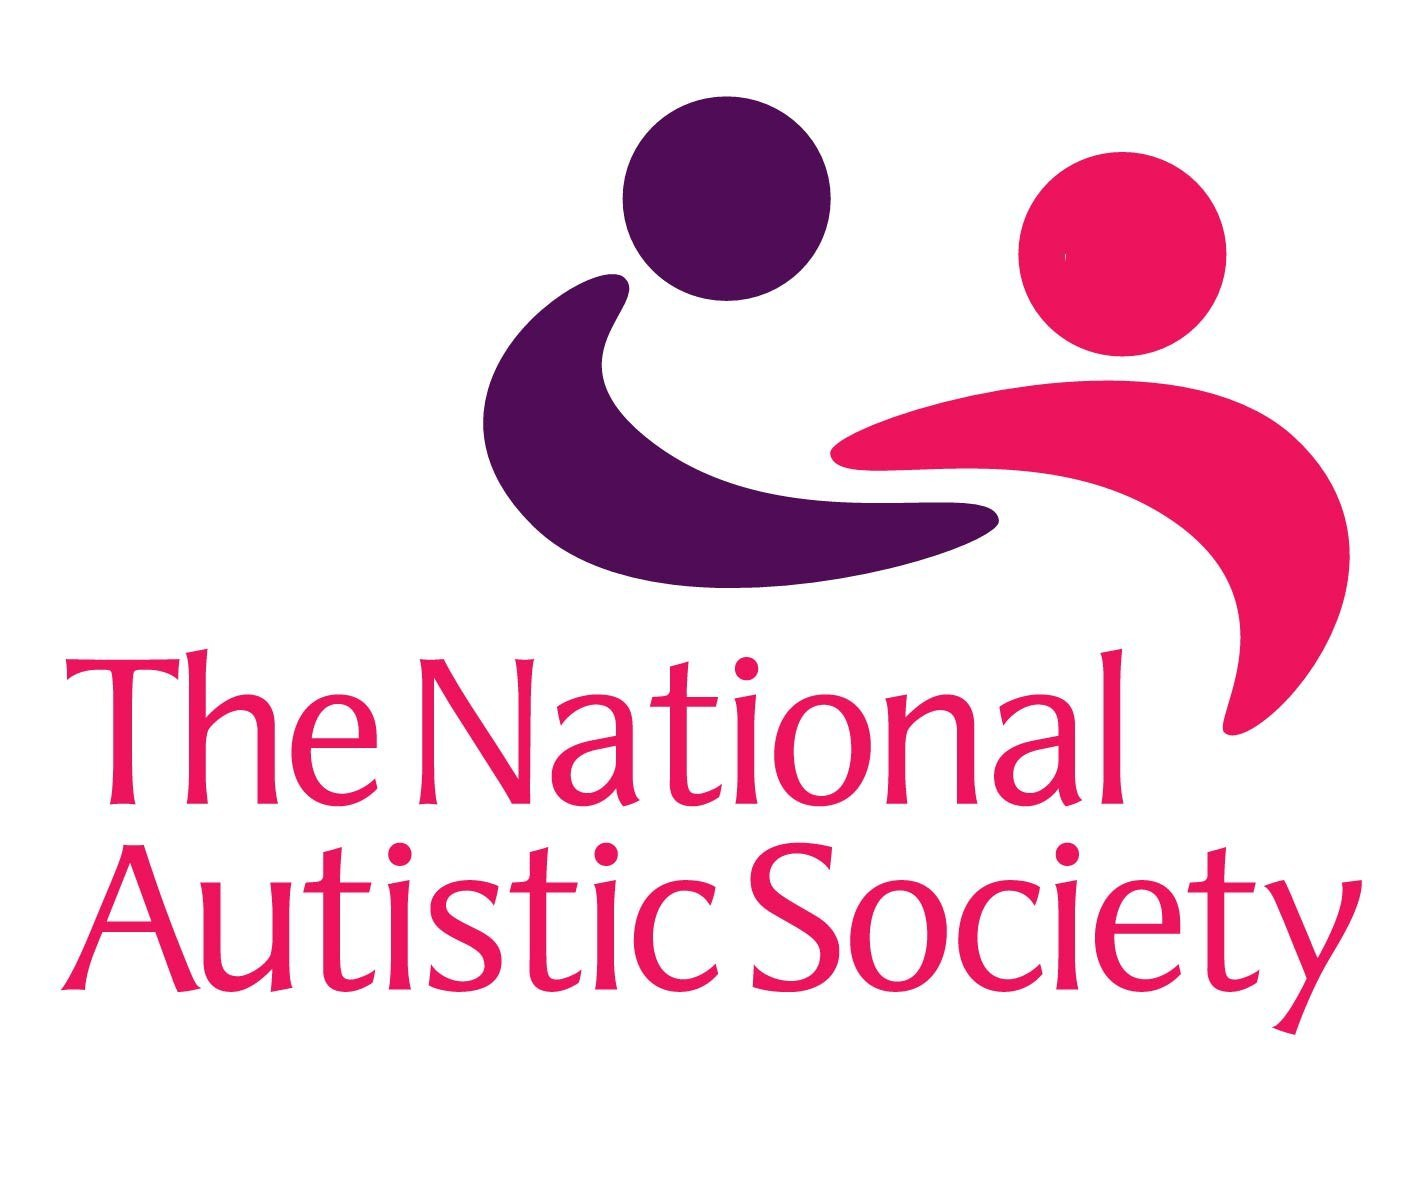 https://assets.live.dxp.maginfrastructure.com/f/73114/1417x1181/34b06f5399/national-autistic-society.jpg